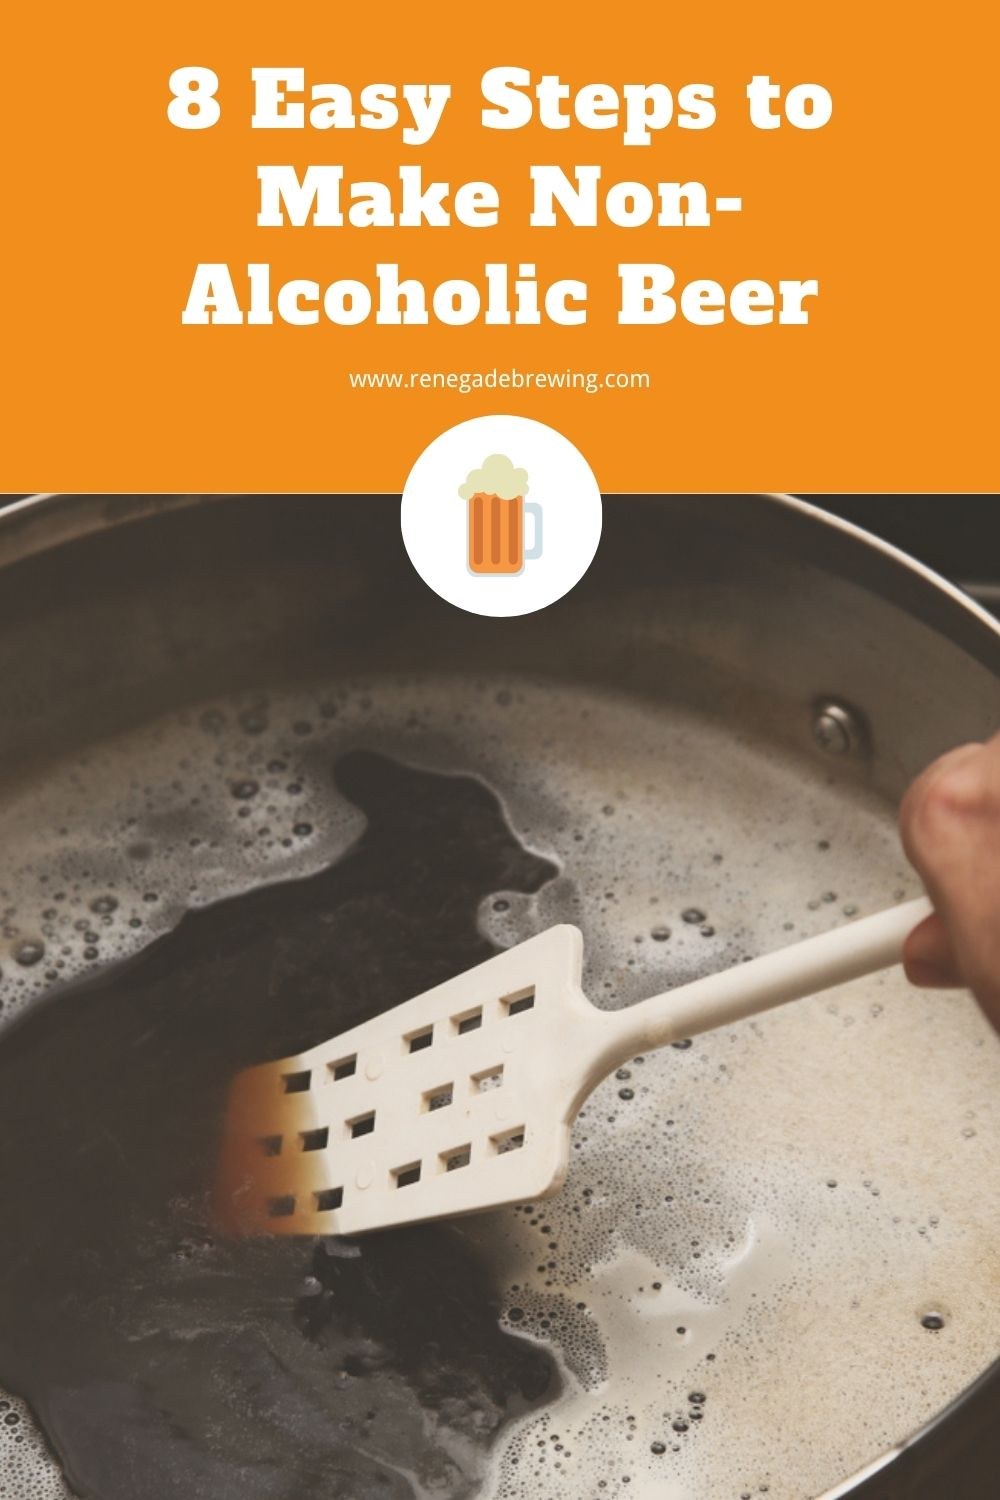 8 Easy Steps to Make Non-Alcoholic Beer 1